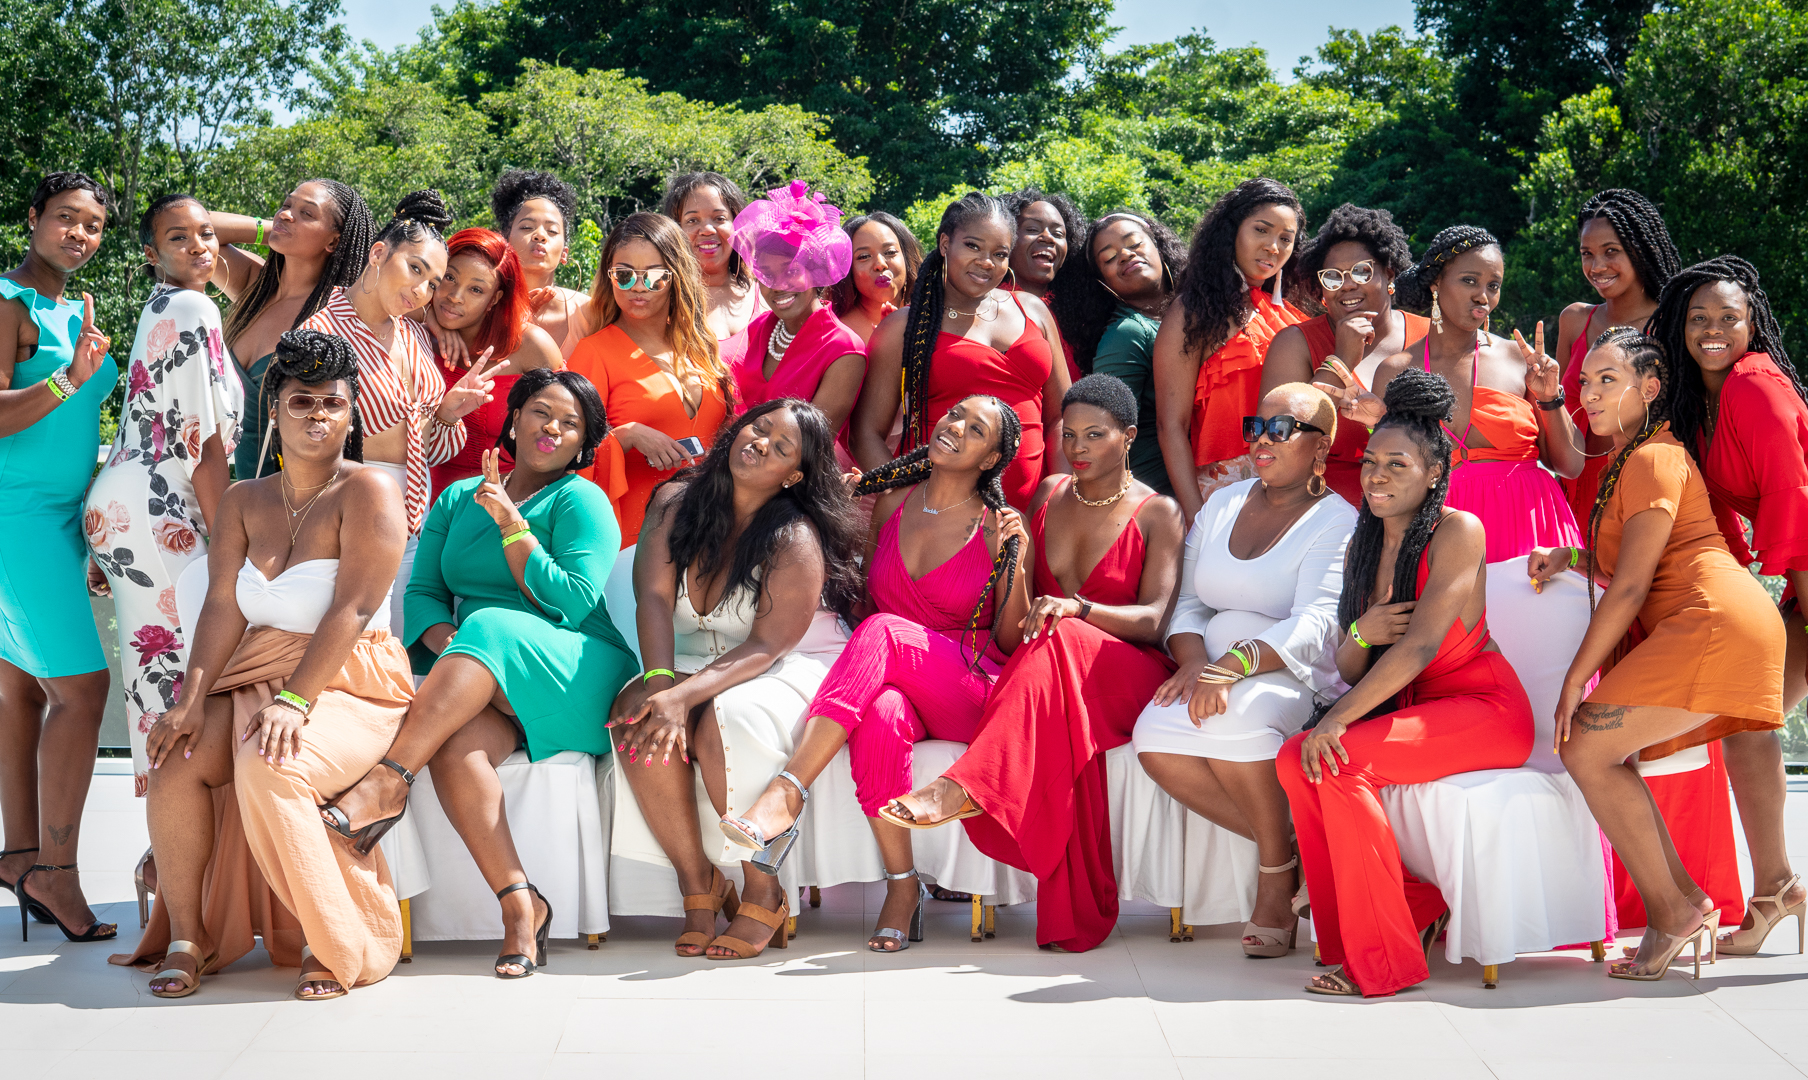 Baddies & BOSSES TAKe cancun - You don't want to miss the hottest retreat of Summer 2019!